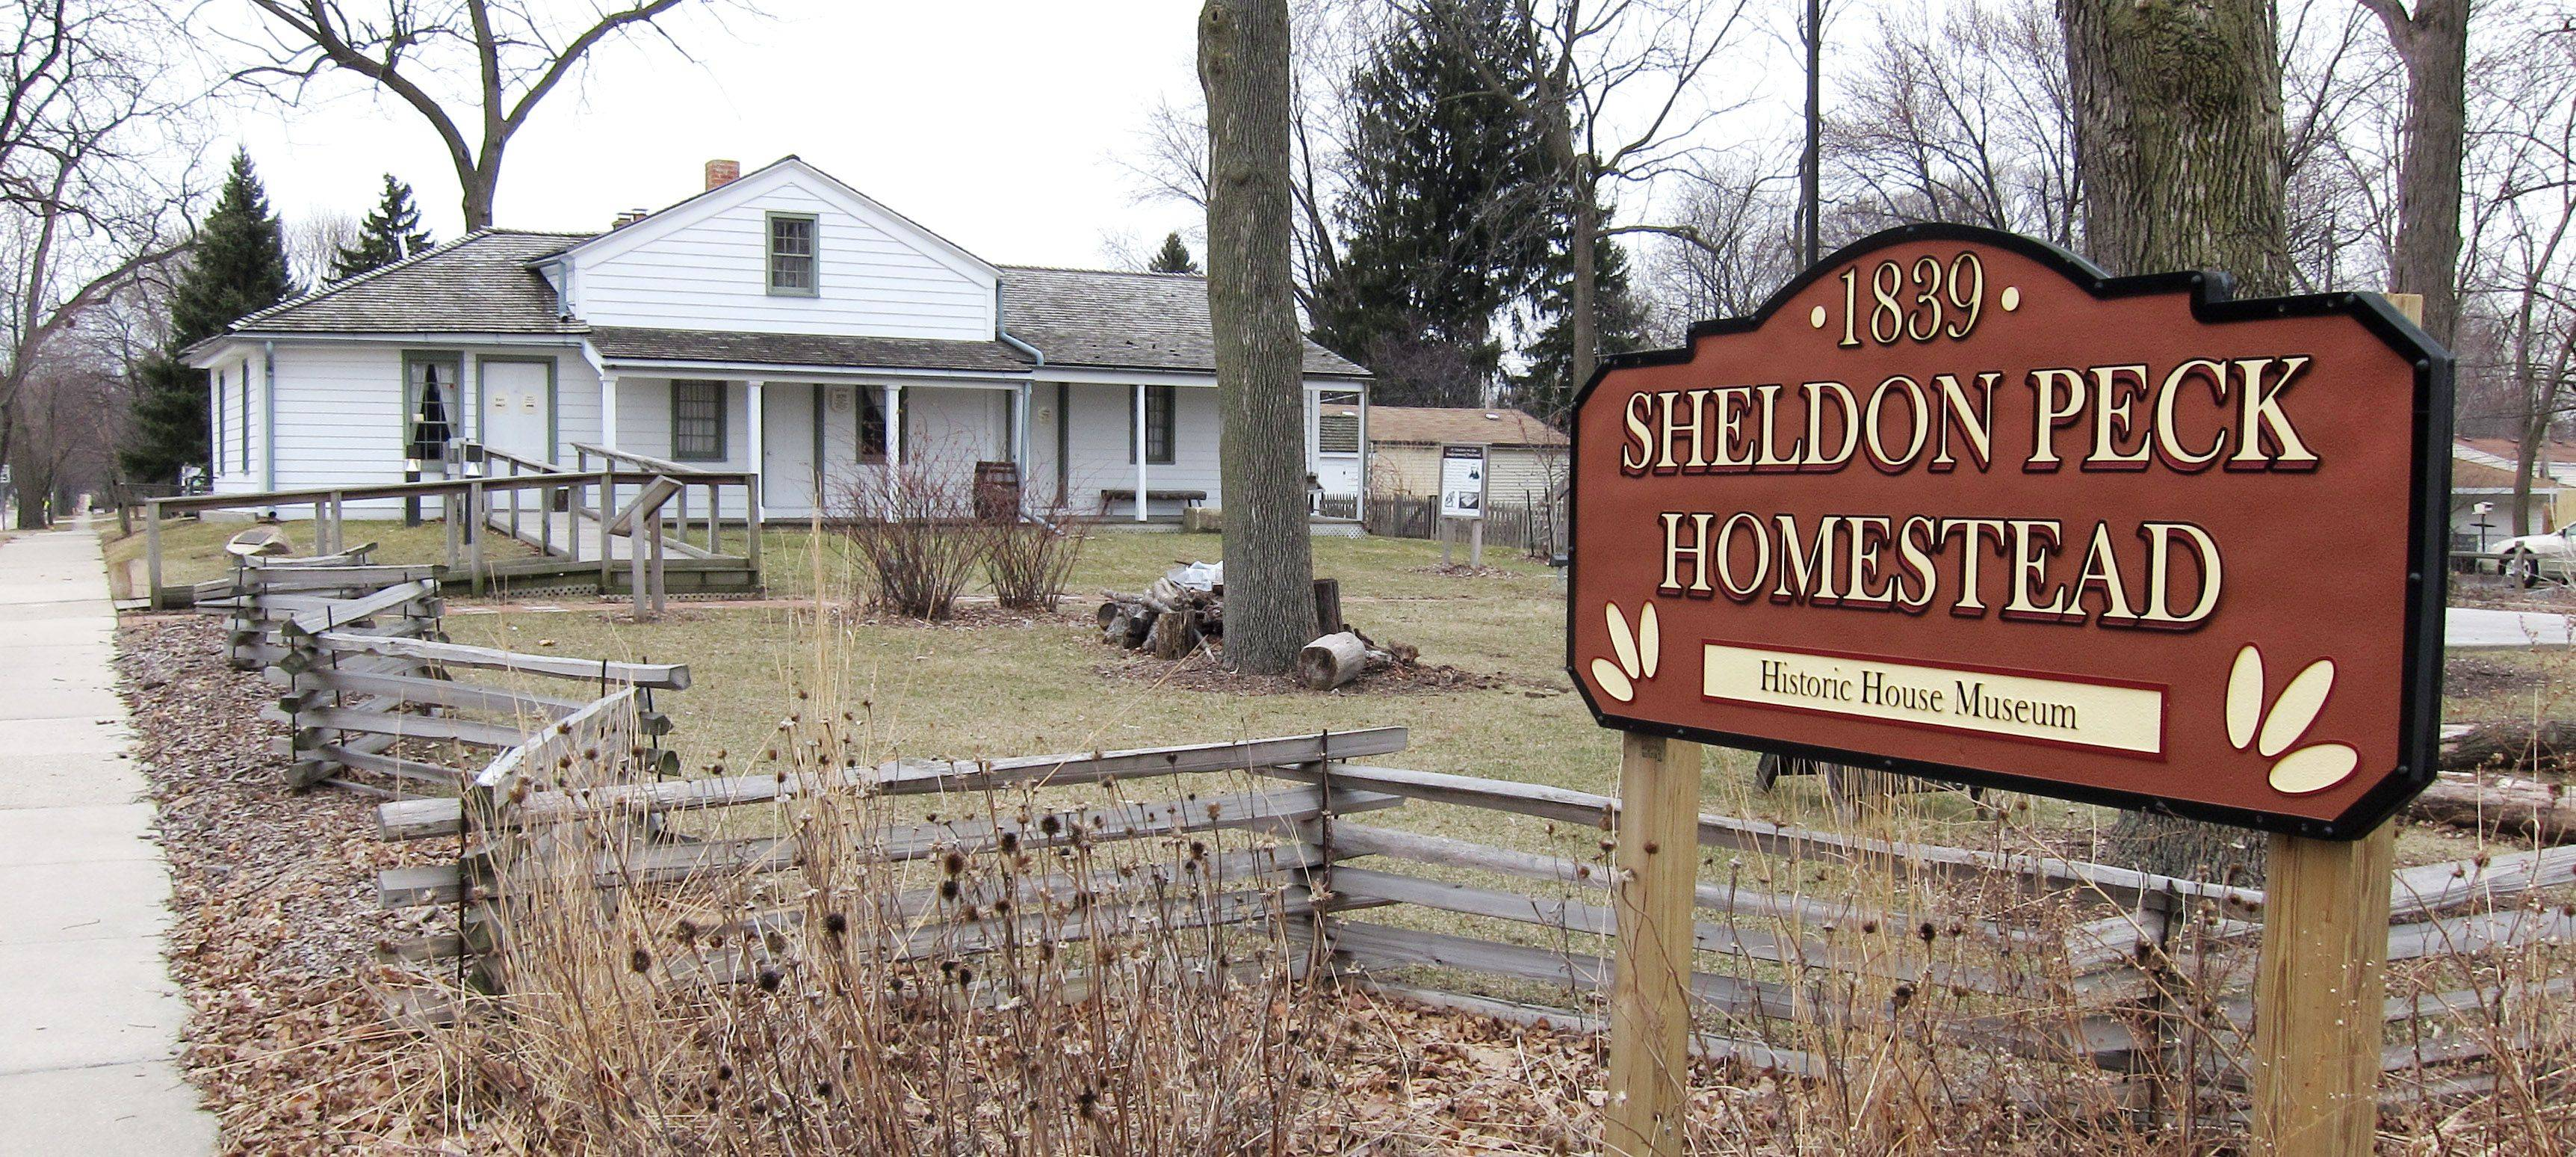 The Sheldon Peck Homestead at 355 E. Parkside Ave. is one of three sites with local landmark status in Lombard.